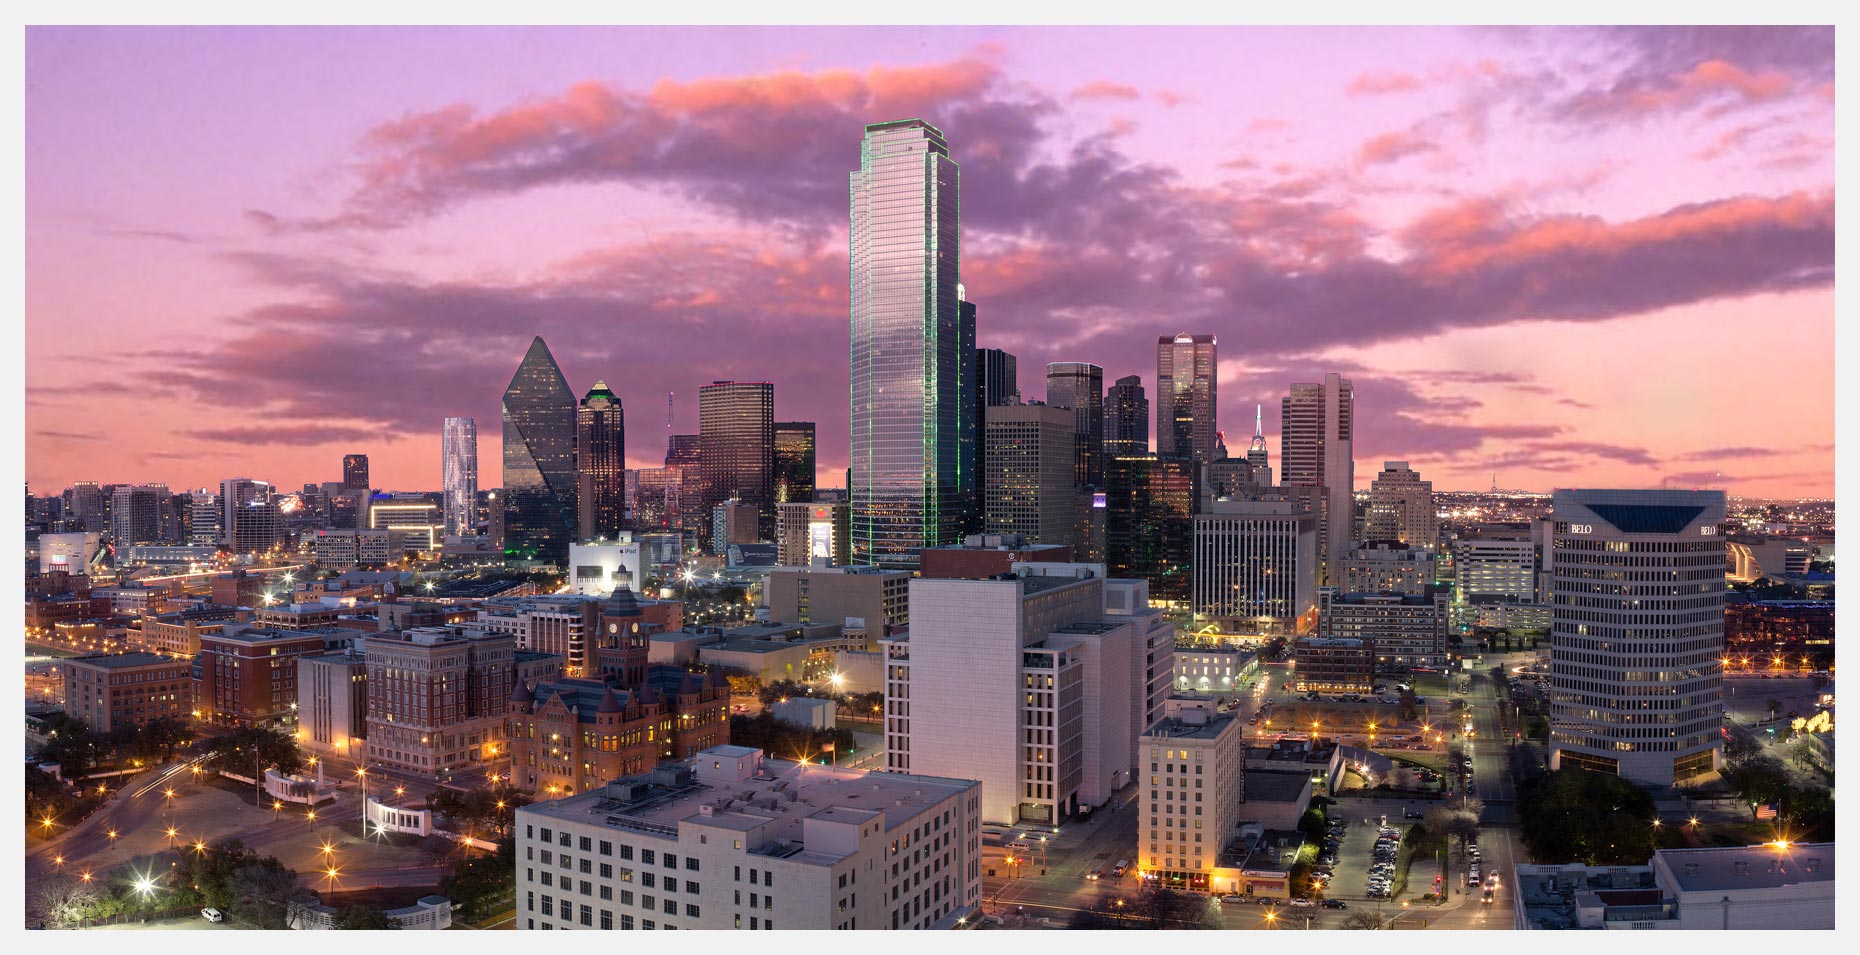 Dallas Skyline Image at Dusk